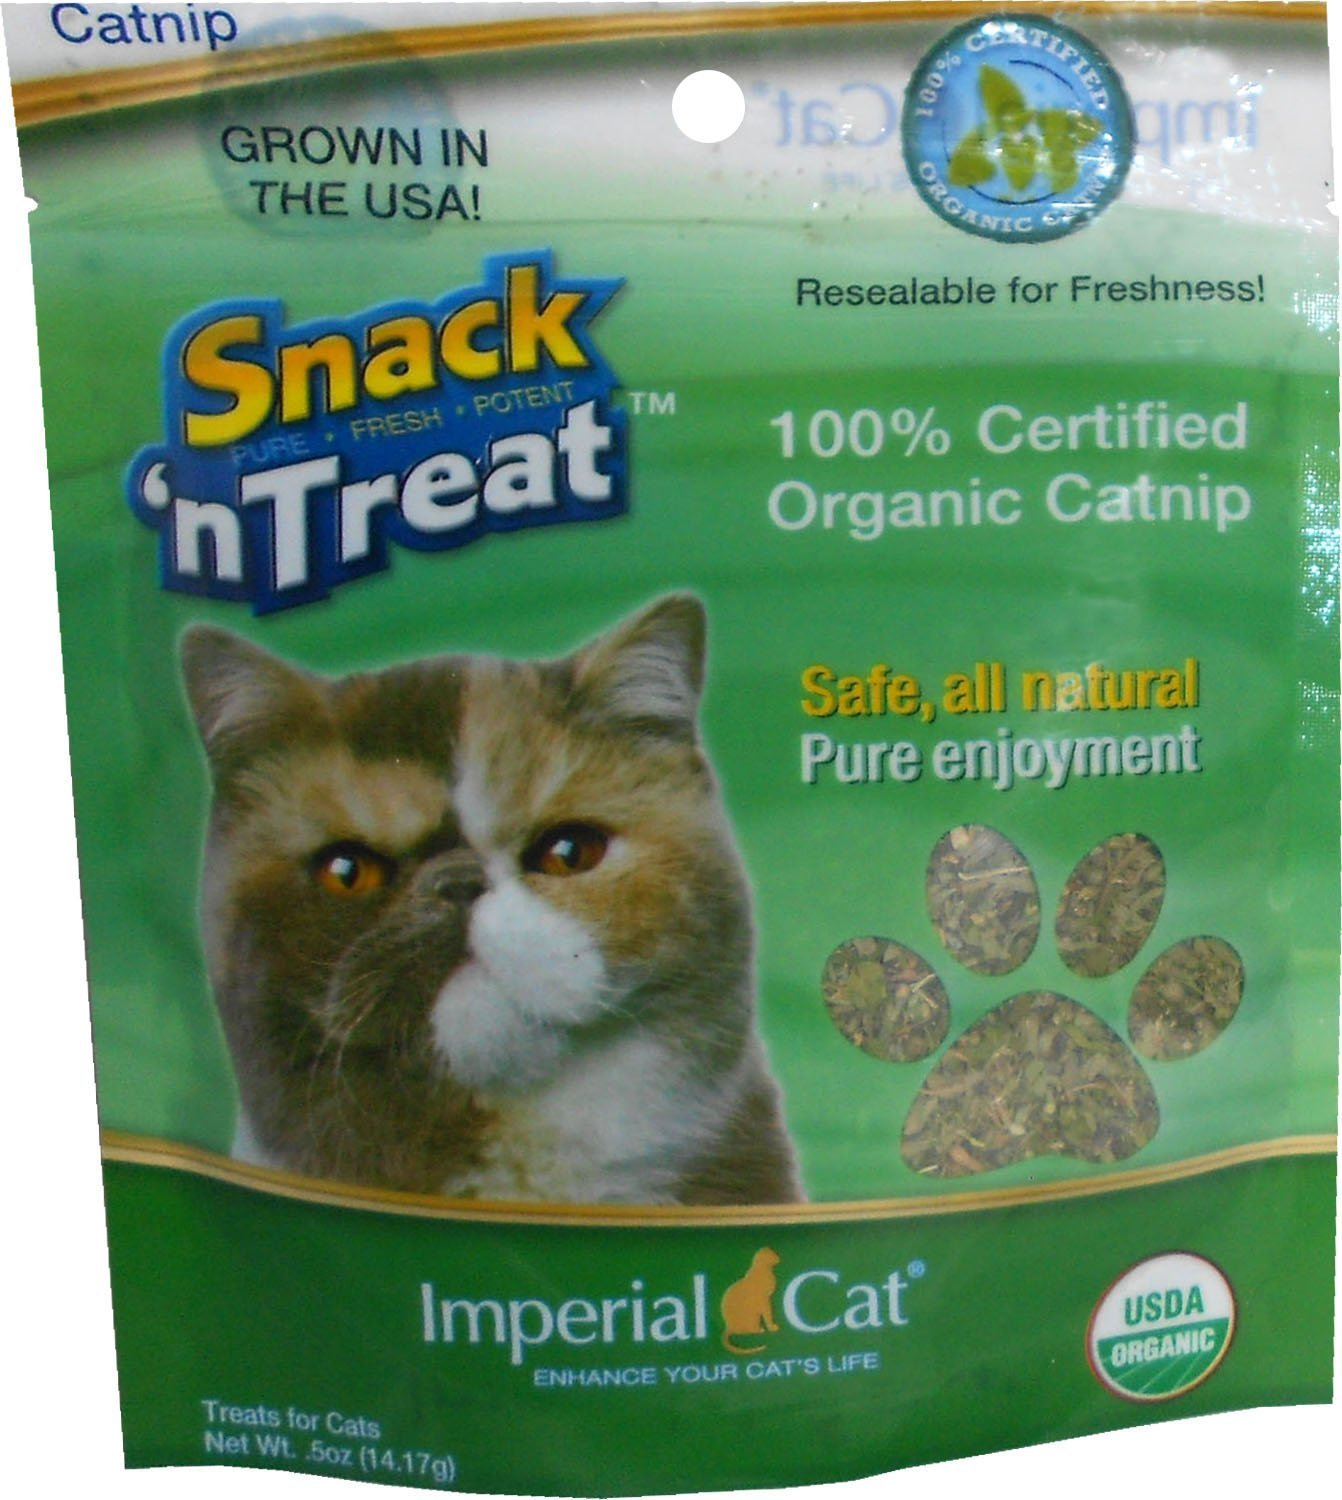 Snack 'n Treats Certified Organic Catnip, 1 2 oz. by Imperial Cat